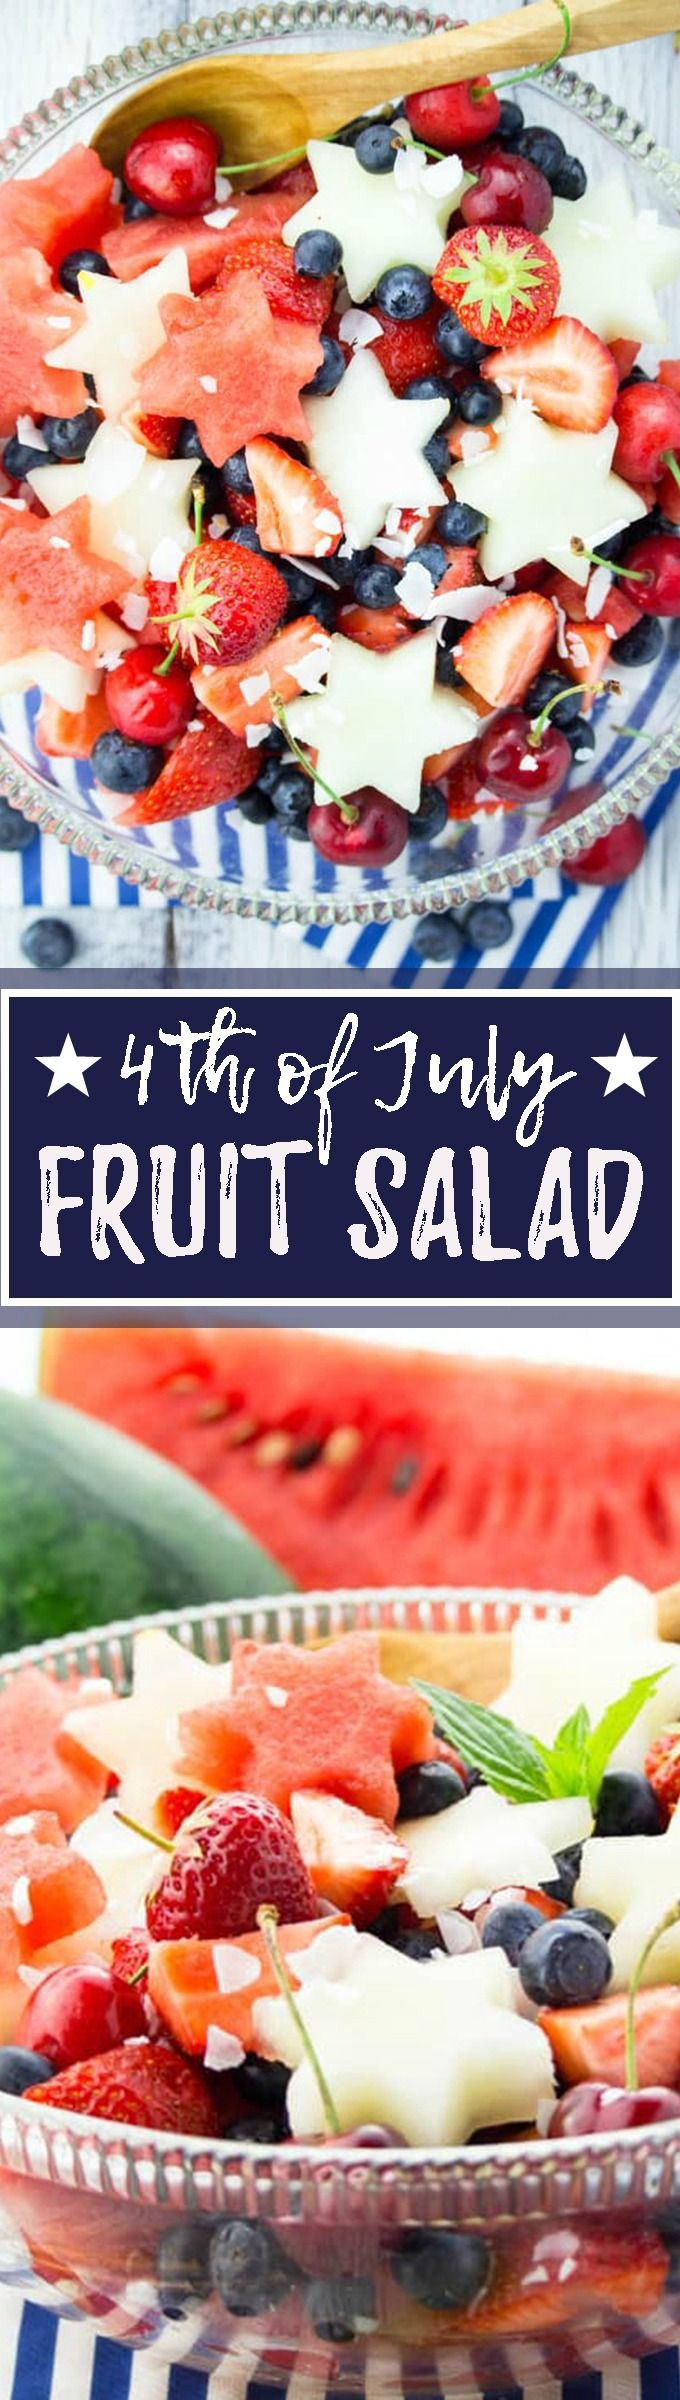 This 4th of July fruit salad with watermelon, honeydew, cherries, and blueberries is not only patriotic but also easy to make, healthy, and so delicious!